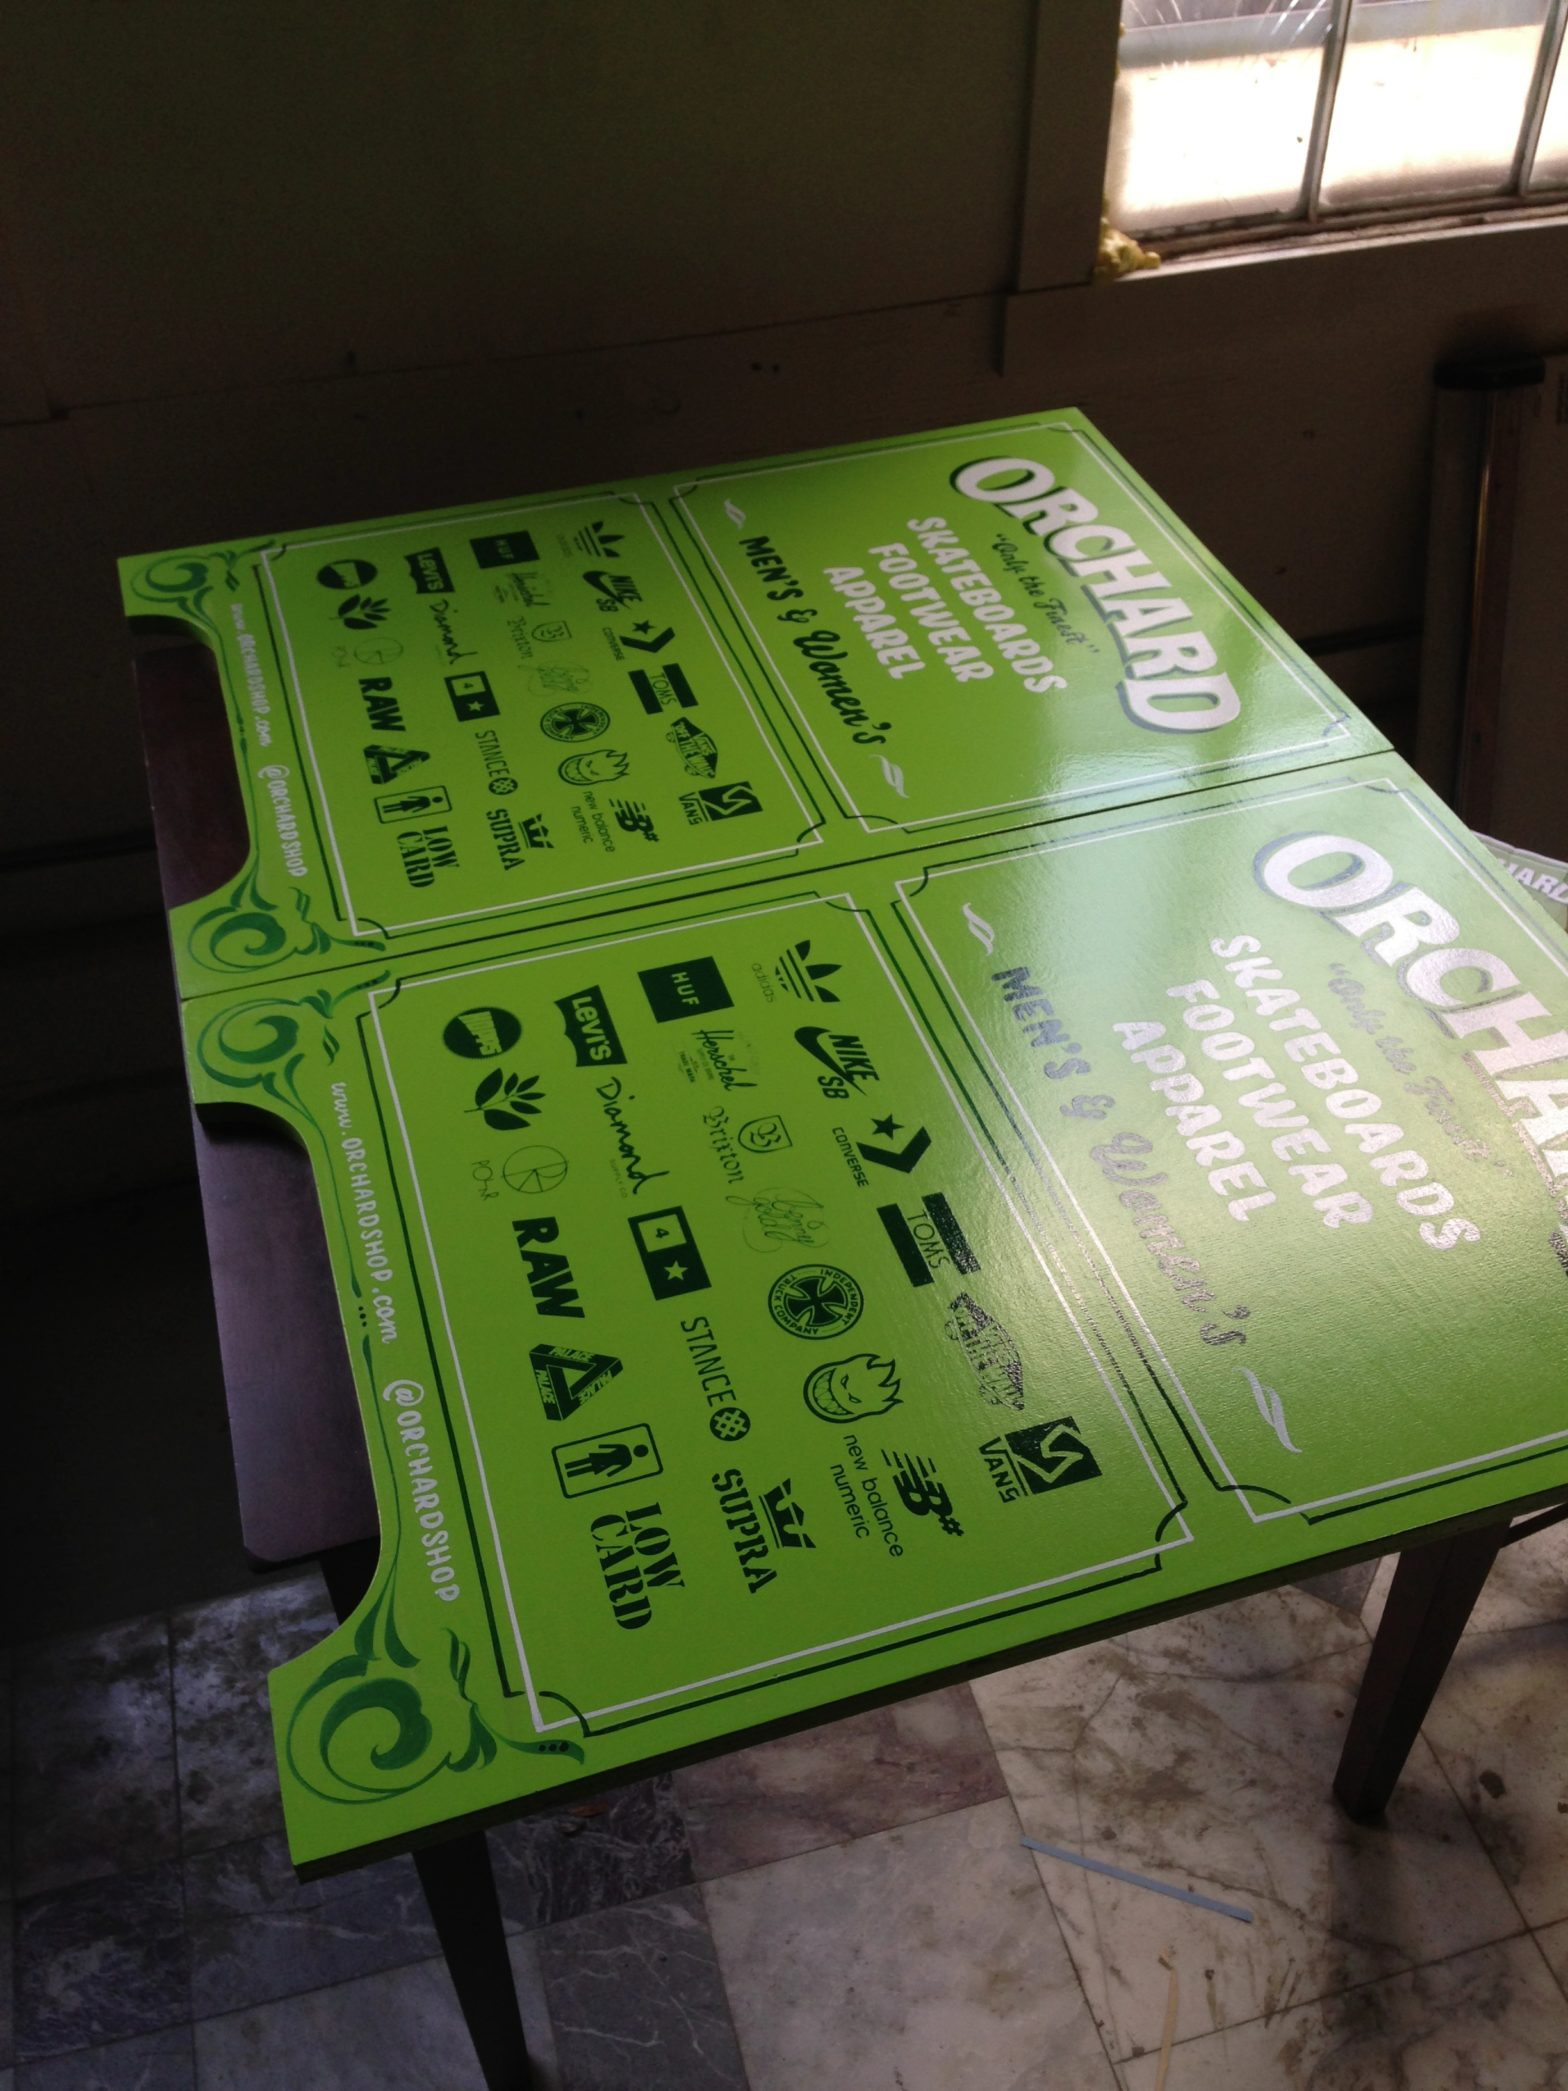 both signs were screen printed successfully